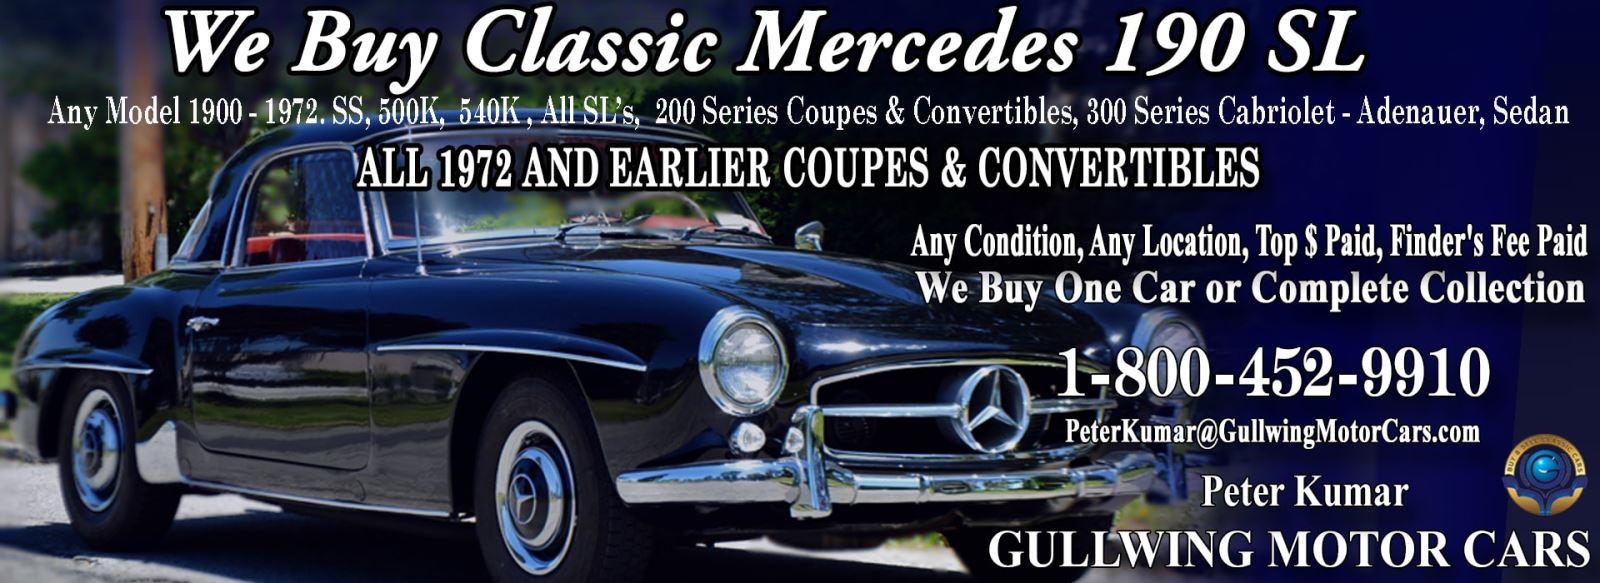 Classic Mercedes 190SL for sale, we buy vintage Mercedes 190SL. Call Peter Kumar. Gullwing Motor